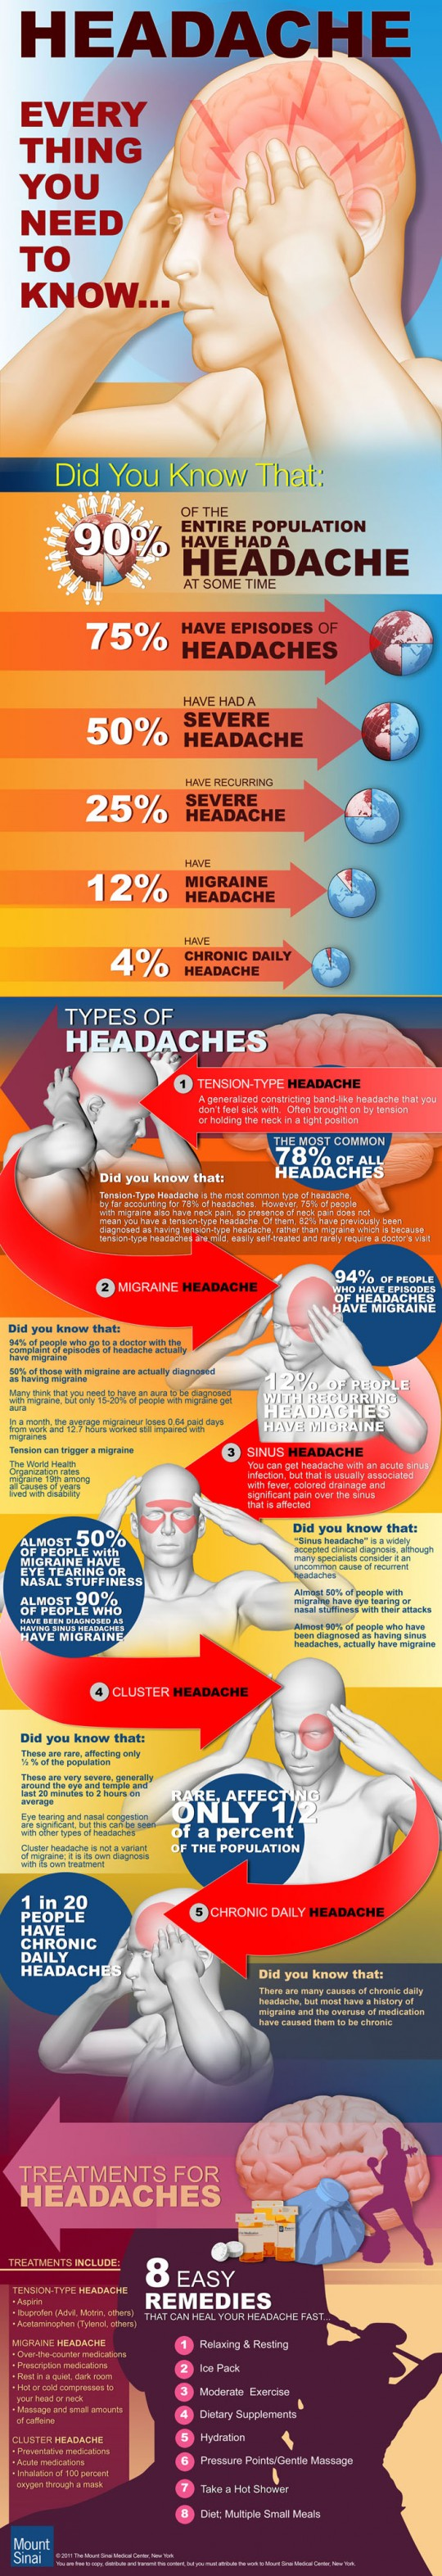 Infographic: All About Headaches: Clinician 1